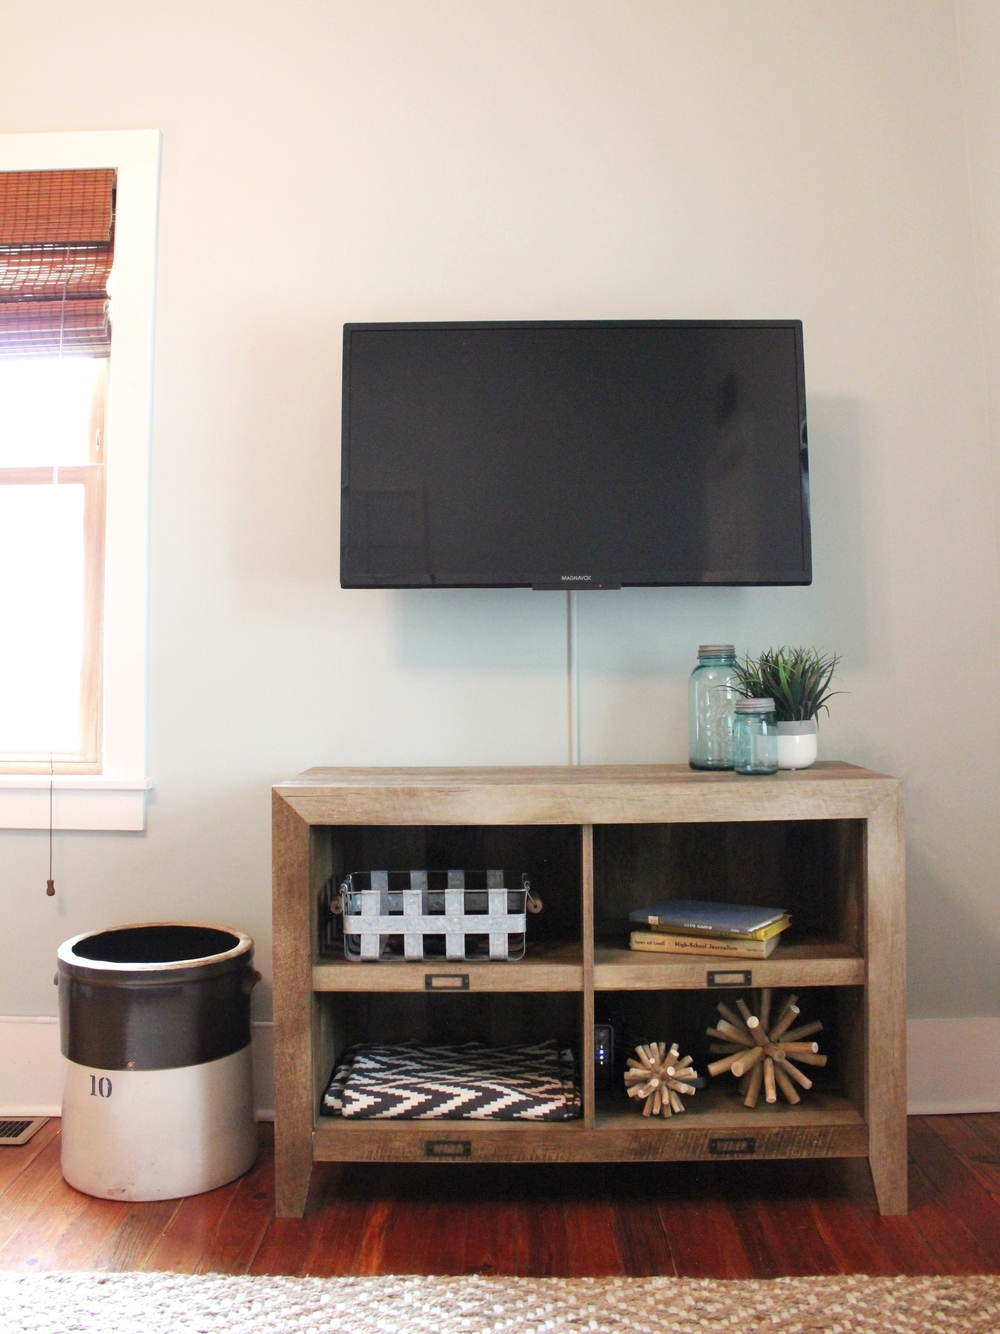 Pottery: Family Heirloom // TV Stand: Wayfair // Accessories: Target & Bargain Hunt.